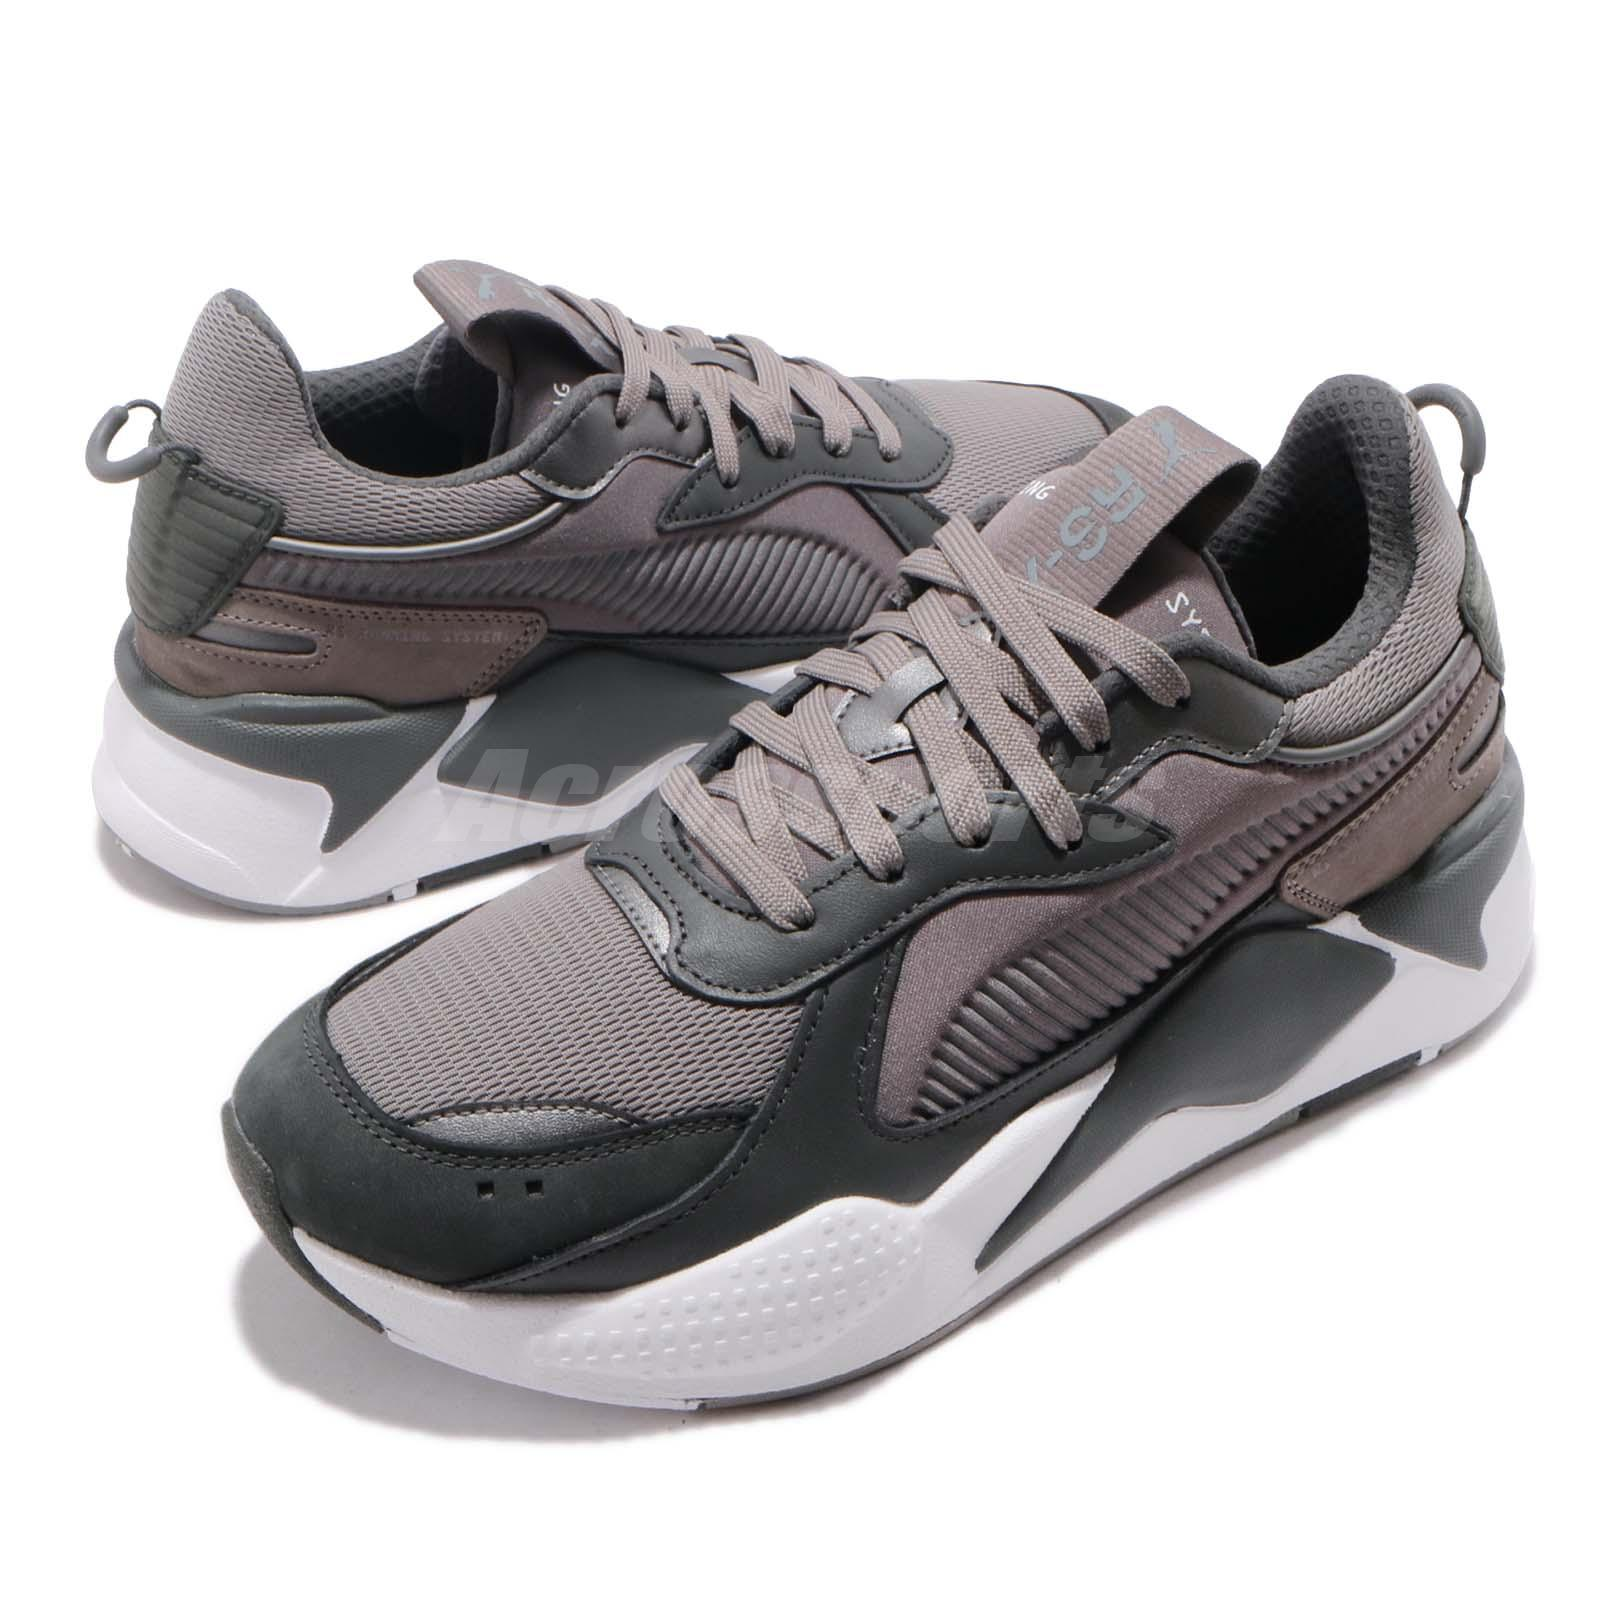 Details about Puma RS-X Trophy Running System Dark Shadow Grey White Men  Shoes 369451-03